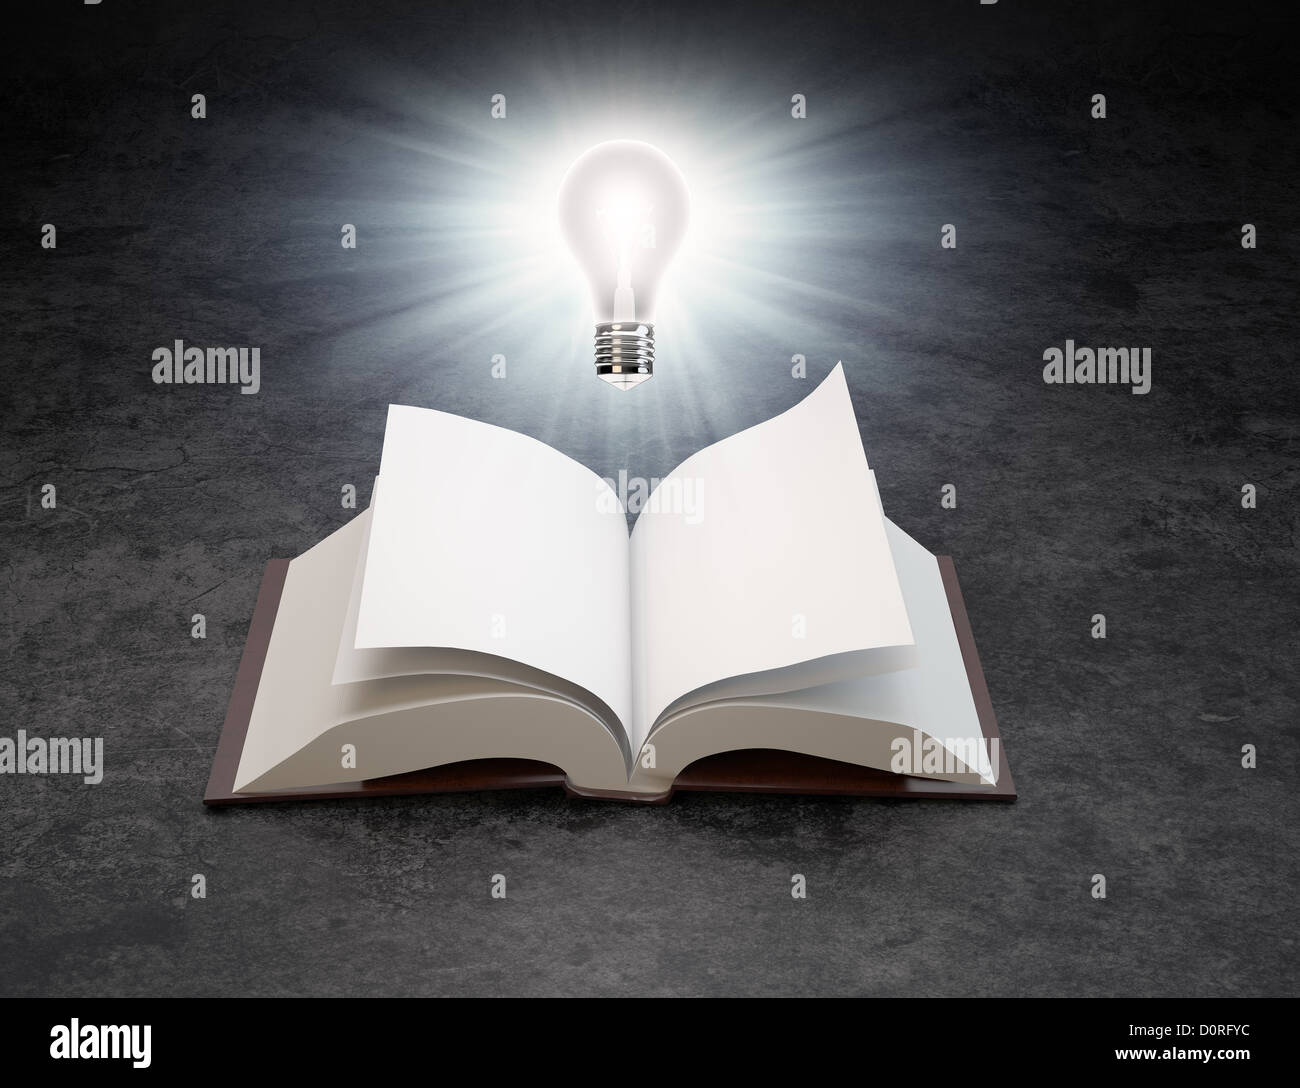 A light bulb over an open book - Stock Image